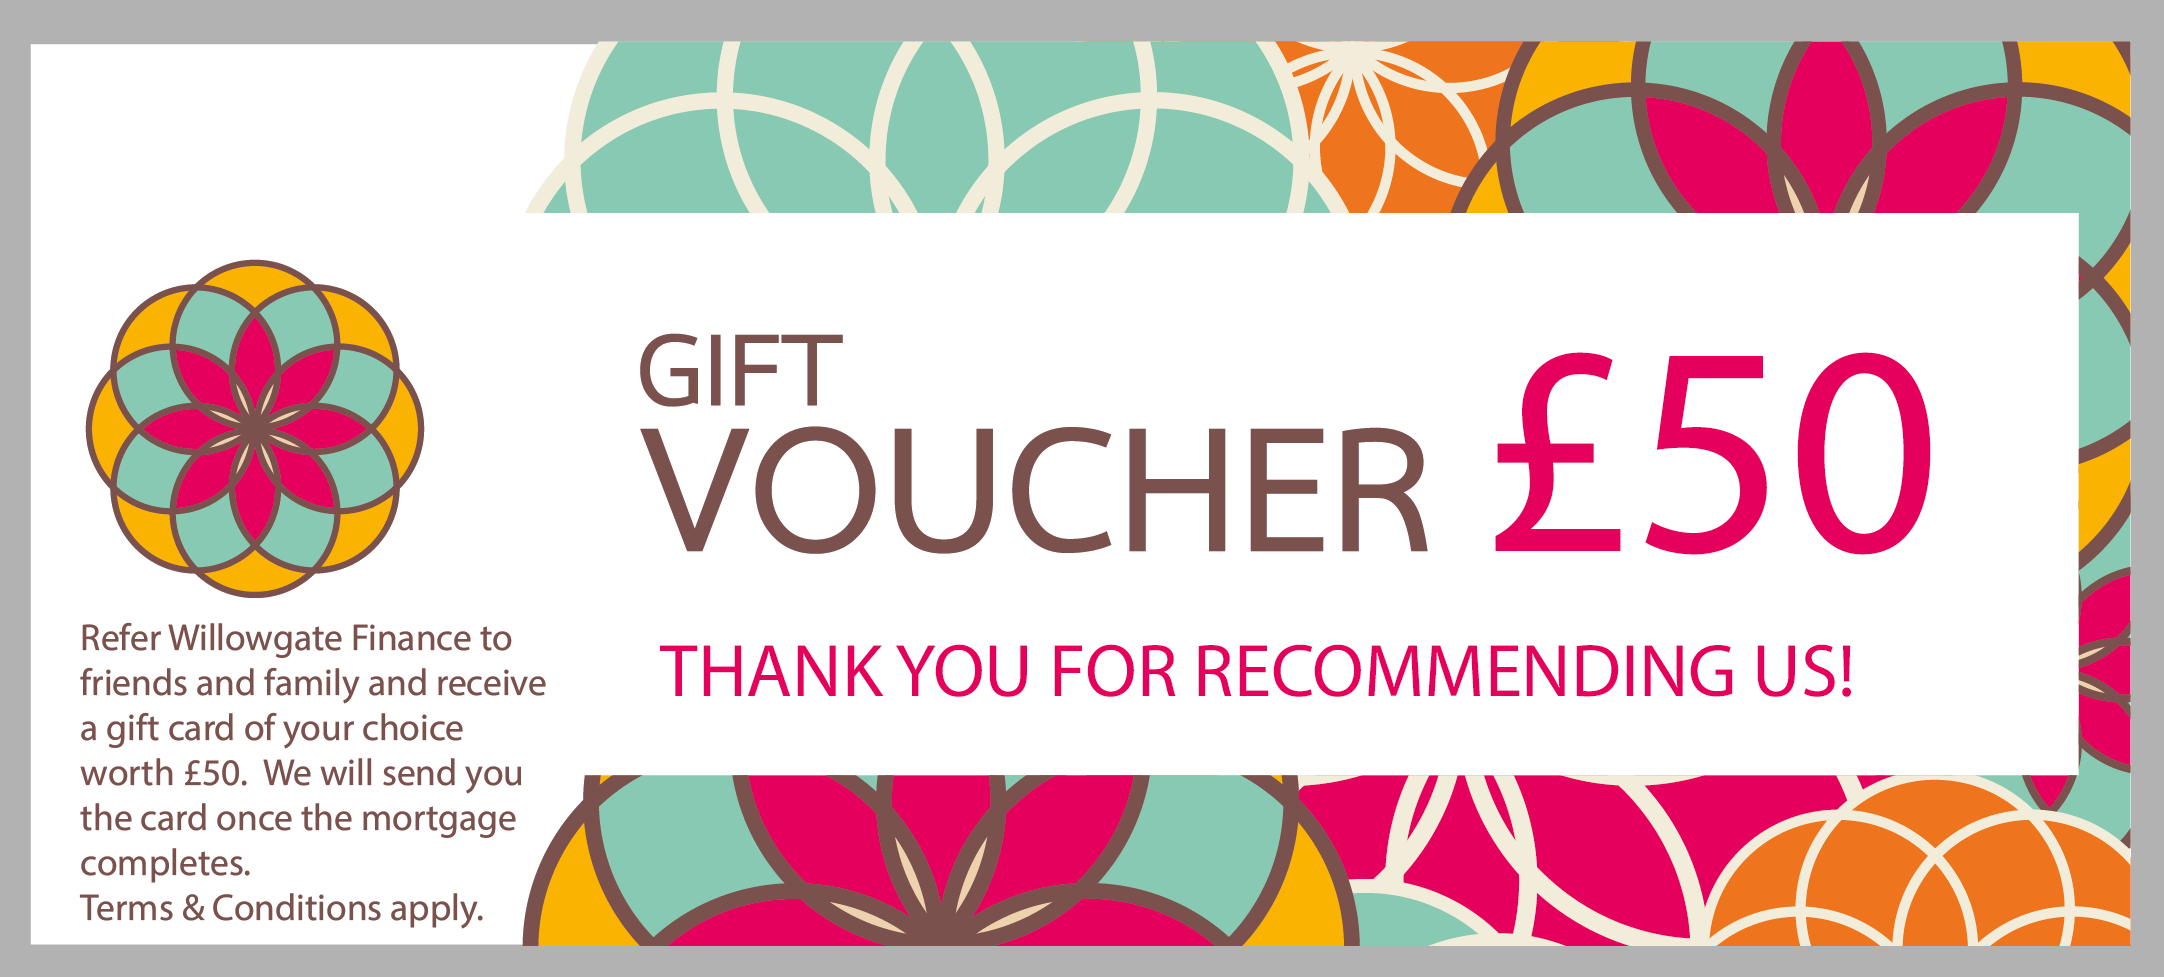 Refer a friend voucher